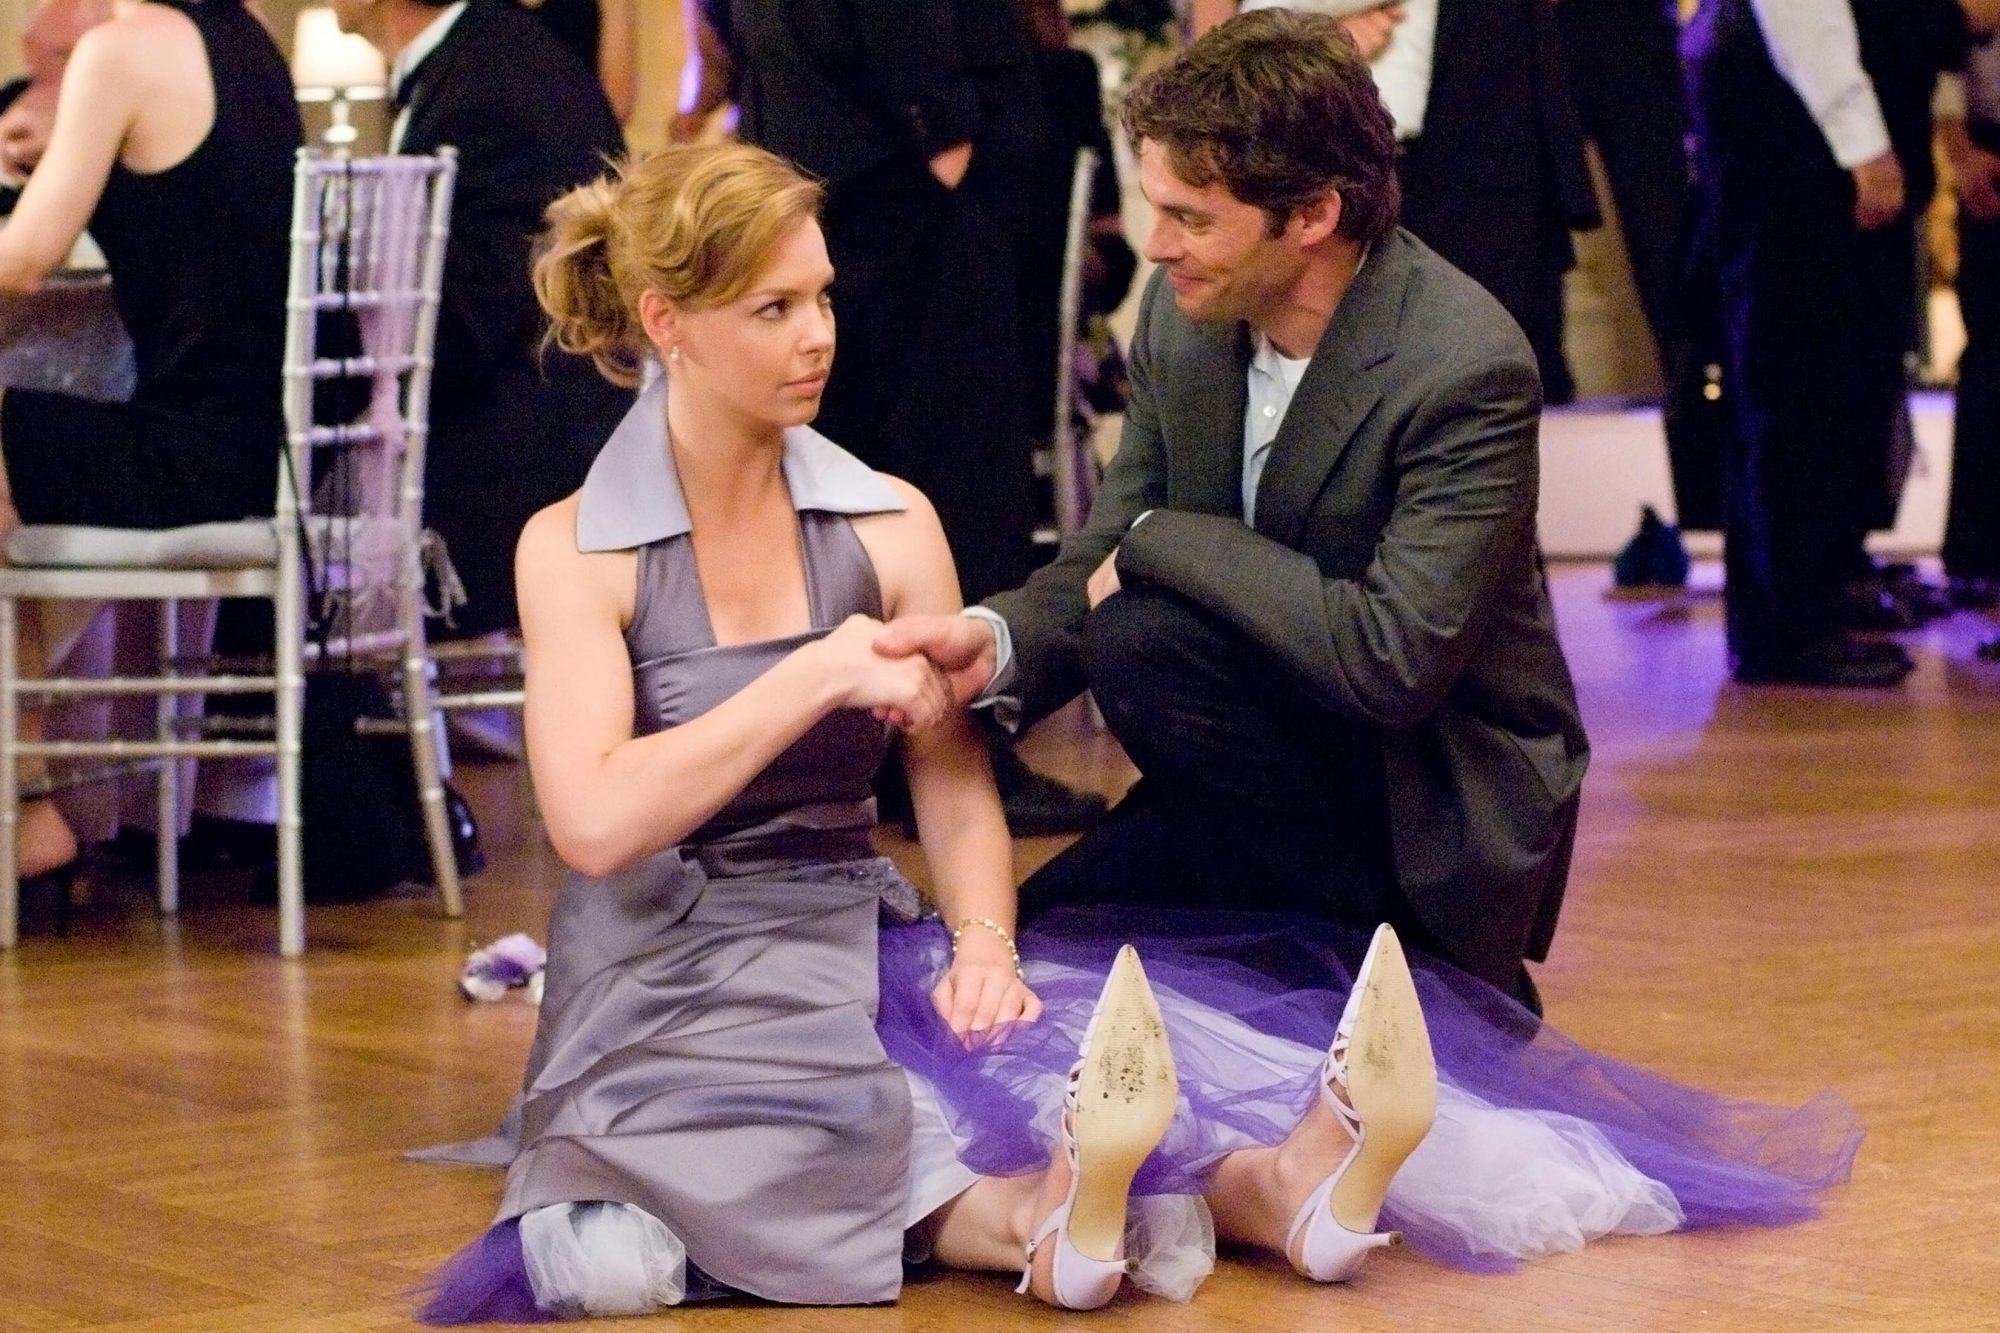 27 DRESSES, Katherine Heigl, James Marsden, 2008. TM &©20th Century Fox. All rights reserved/courtes